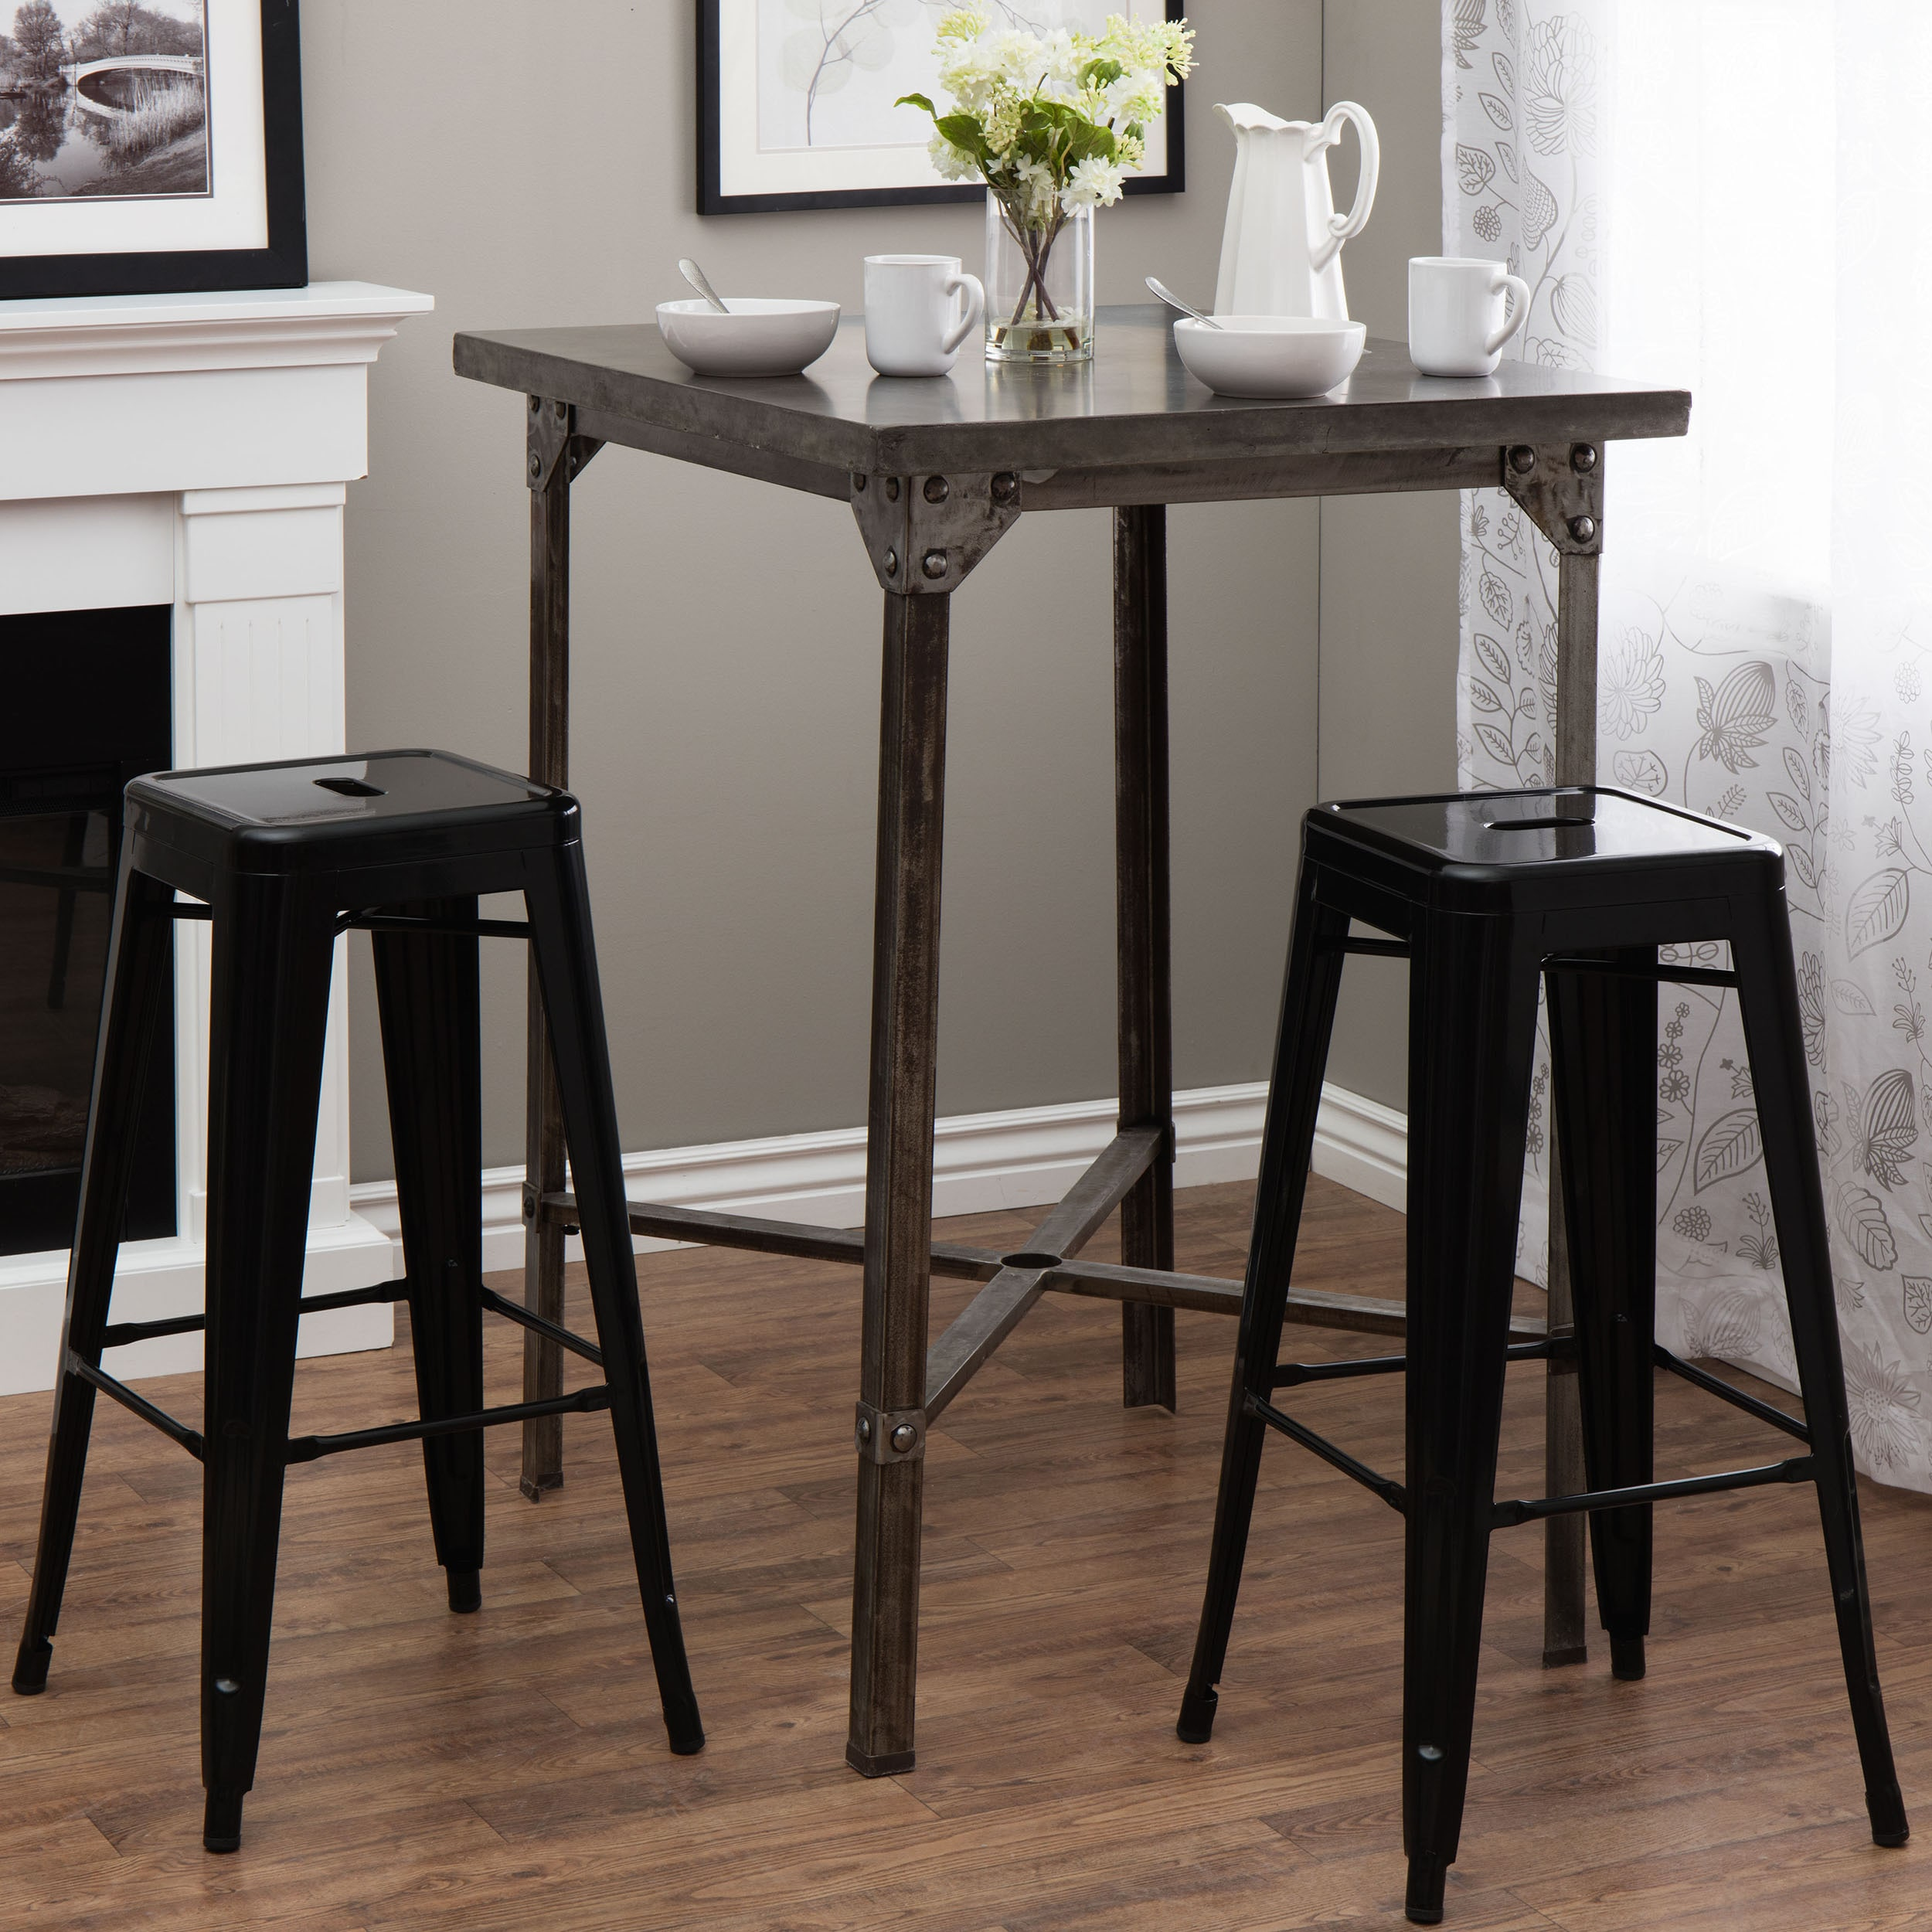 Amazing Tabouret Furniture Contemporary Black Metal Chairs Seat Bar Stools Set Of 2  New